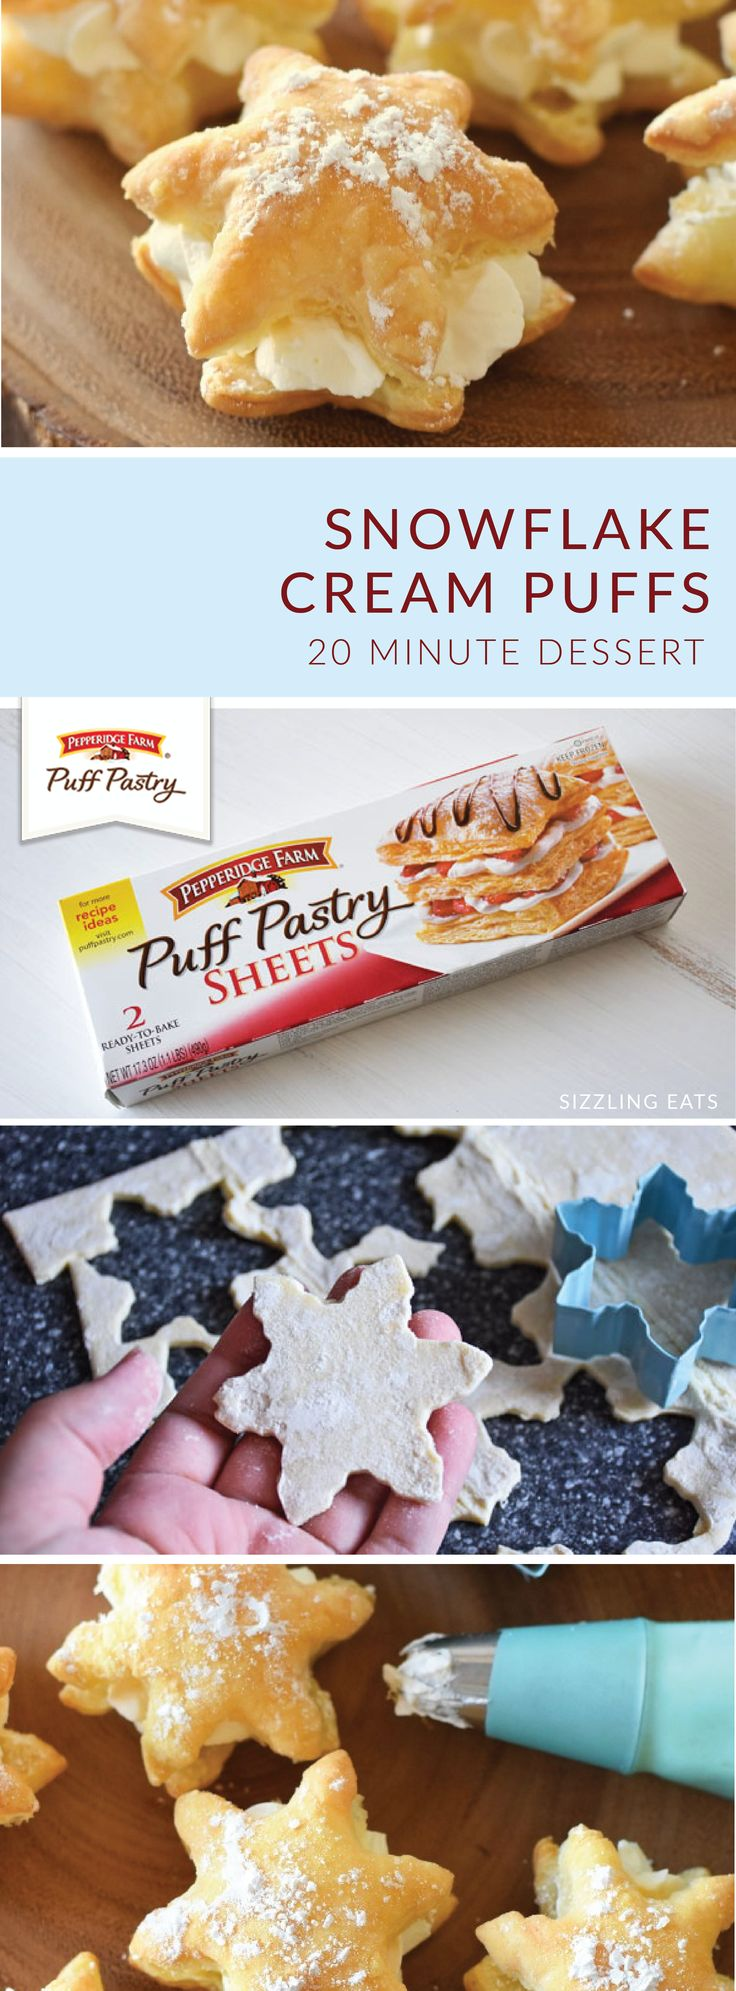 Delight your holiday guests with these 20 Minute Snowflake Cream Puffs from Amy, of Sizzling Eats. Simply use a cookie cutter to form Pepperidge Farm® Puff Pastry Sheets into the shape of a winter snowflake. Then, stuff with homemade whipped cream and top with powdered sugar to complete this festive, easy dessert recipe.